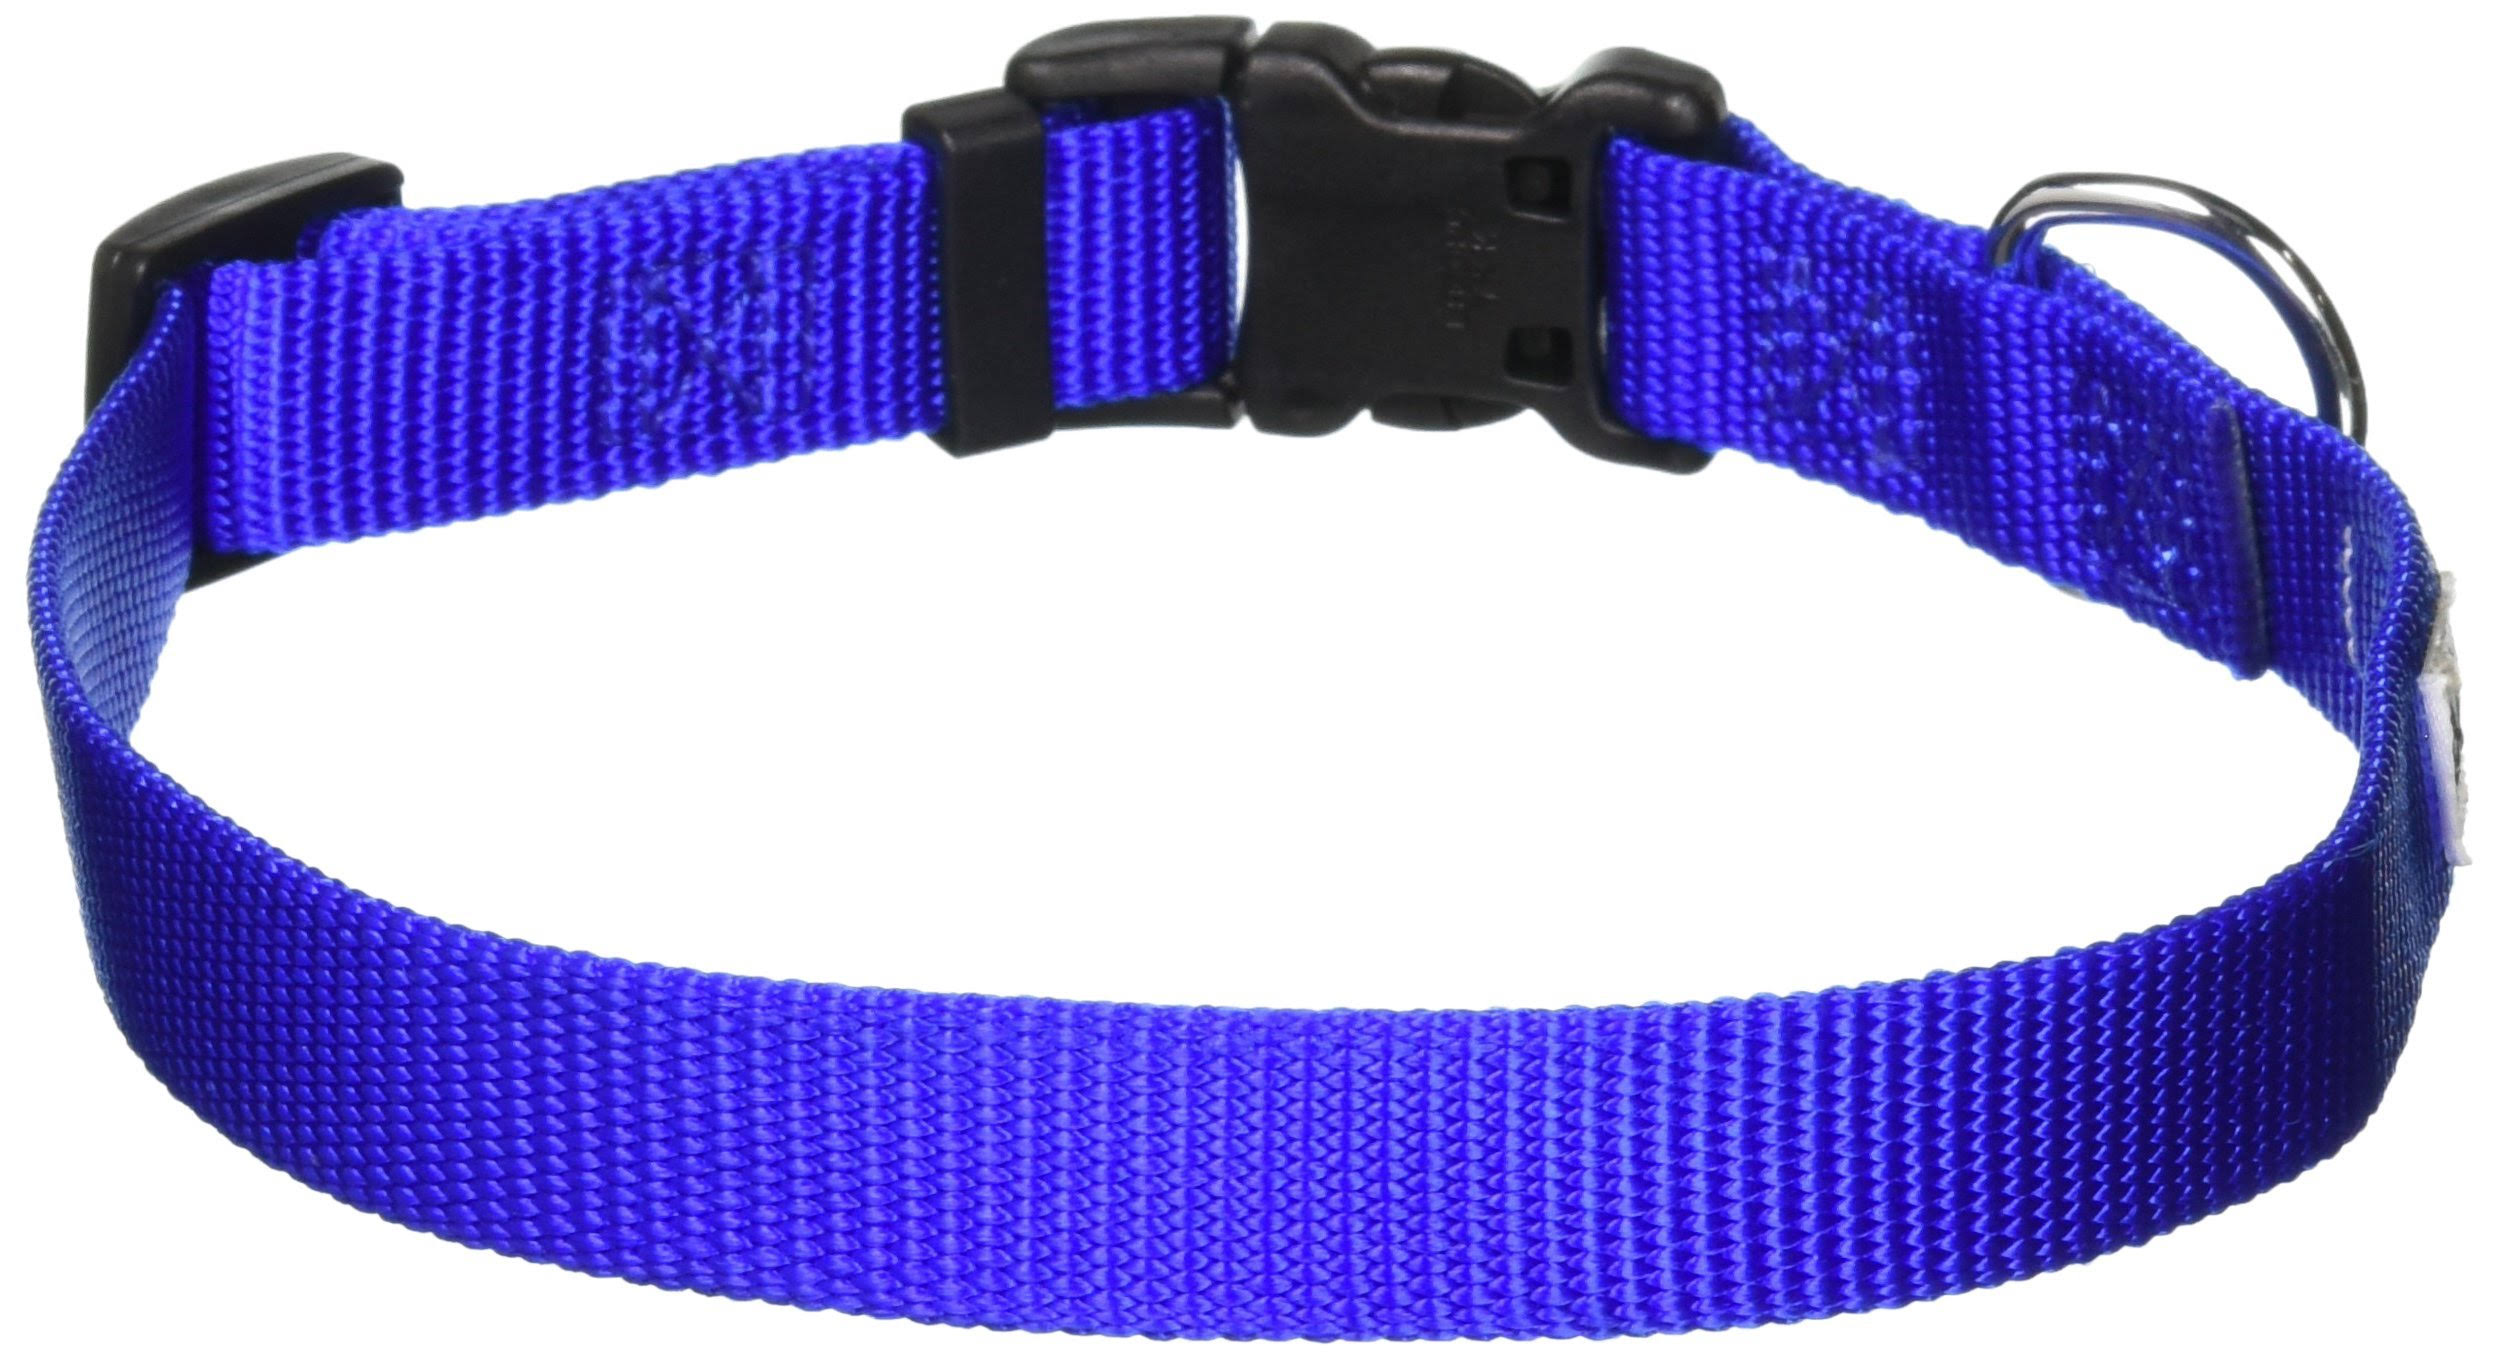 "GoGo Pet Products Comfy Nylon Adjustable Pet Dog Collar - Medium, Blue, 3/4"" x 14-20"""